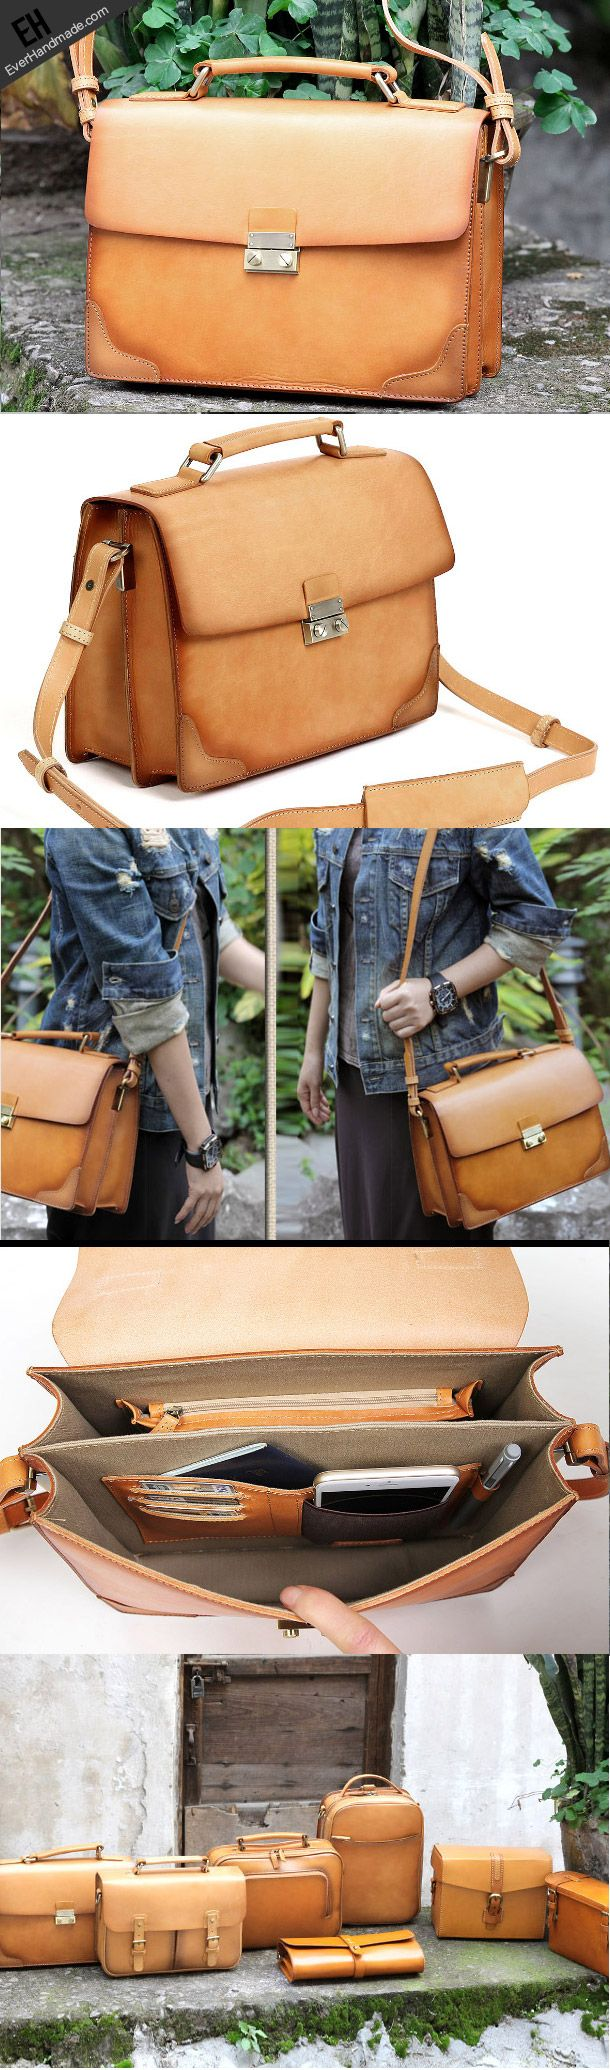 Handmade vintage satchel leather normal messenger bag beige shoulder bag for women